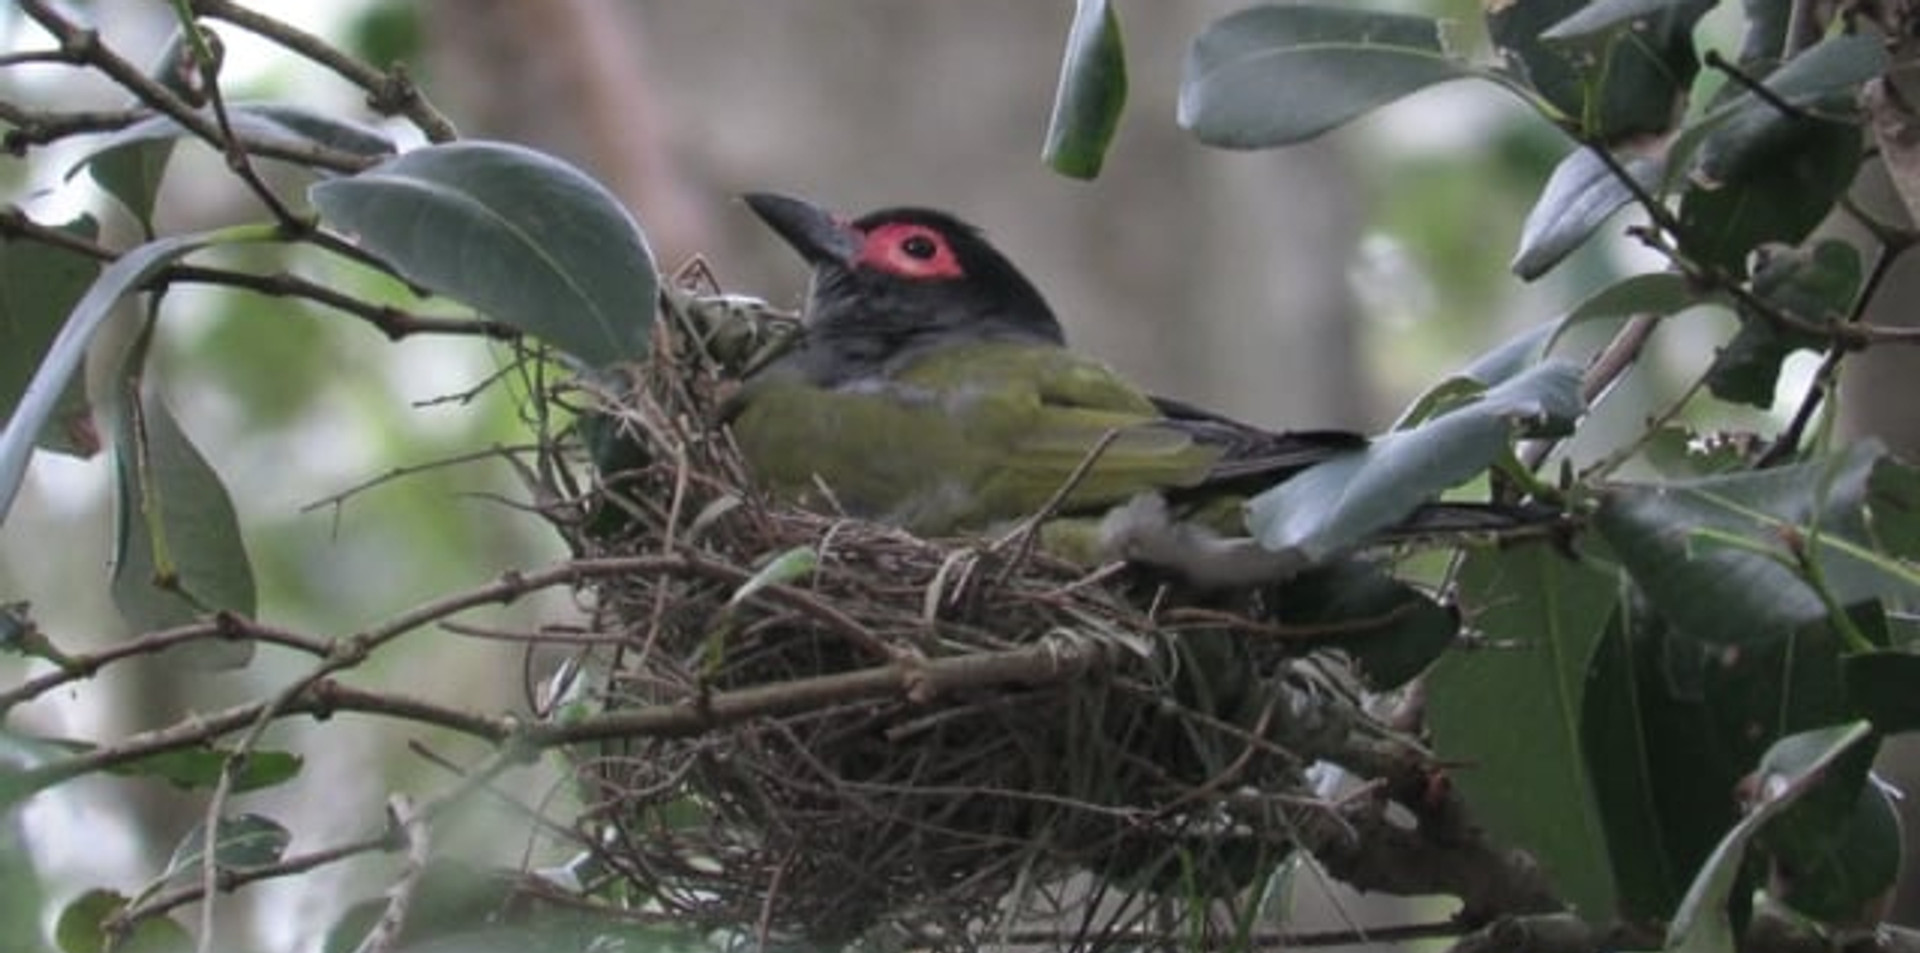 Adult male Australasian Figbird sitting on nest and calling